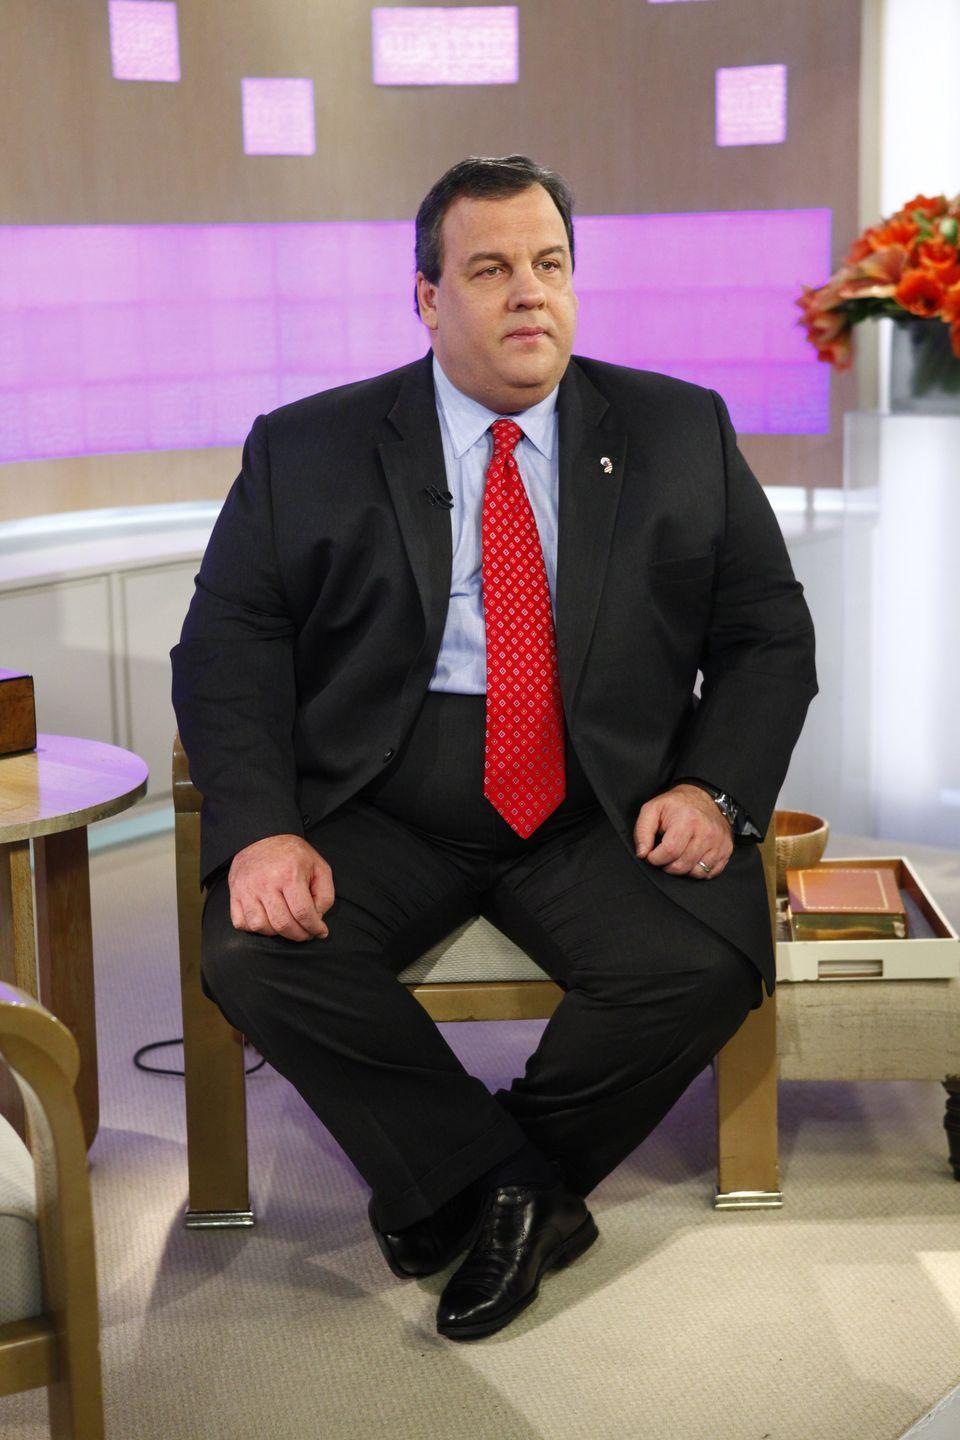 <p>The former New Jersey Governor kept his lap band surgery quiet at first. Chris received the operation in February 2013, and it didn't make headlines until a few months later.</p>